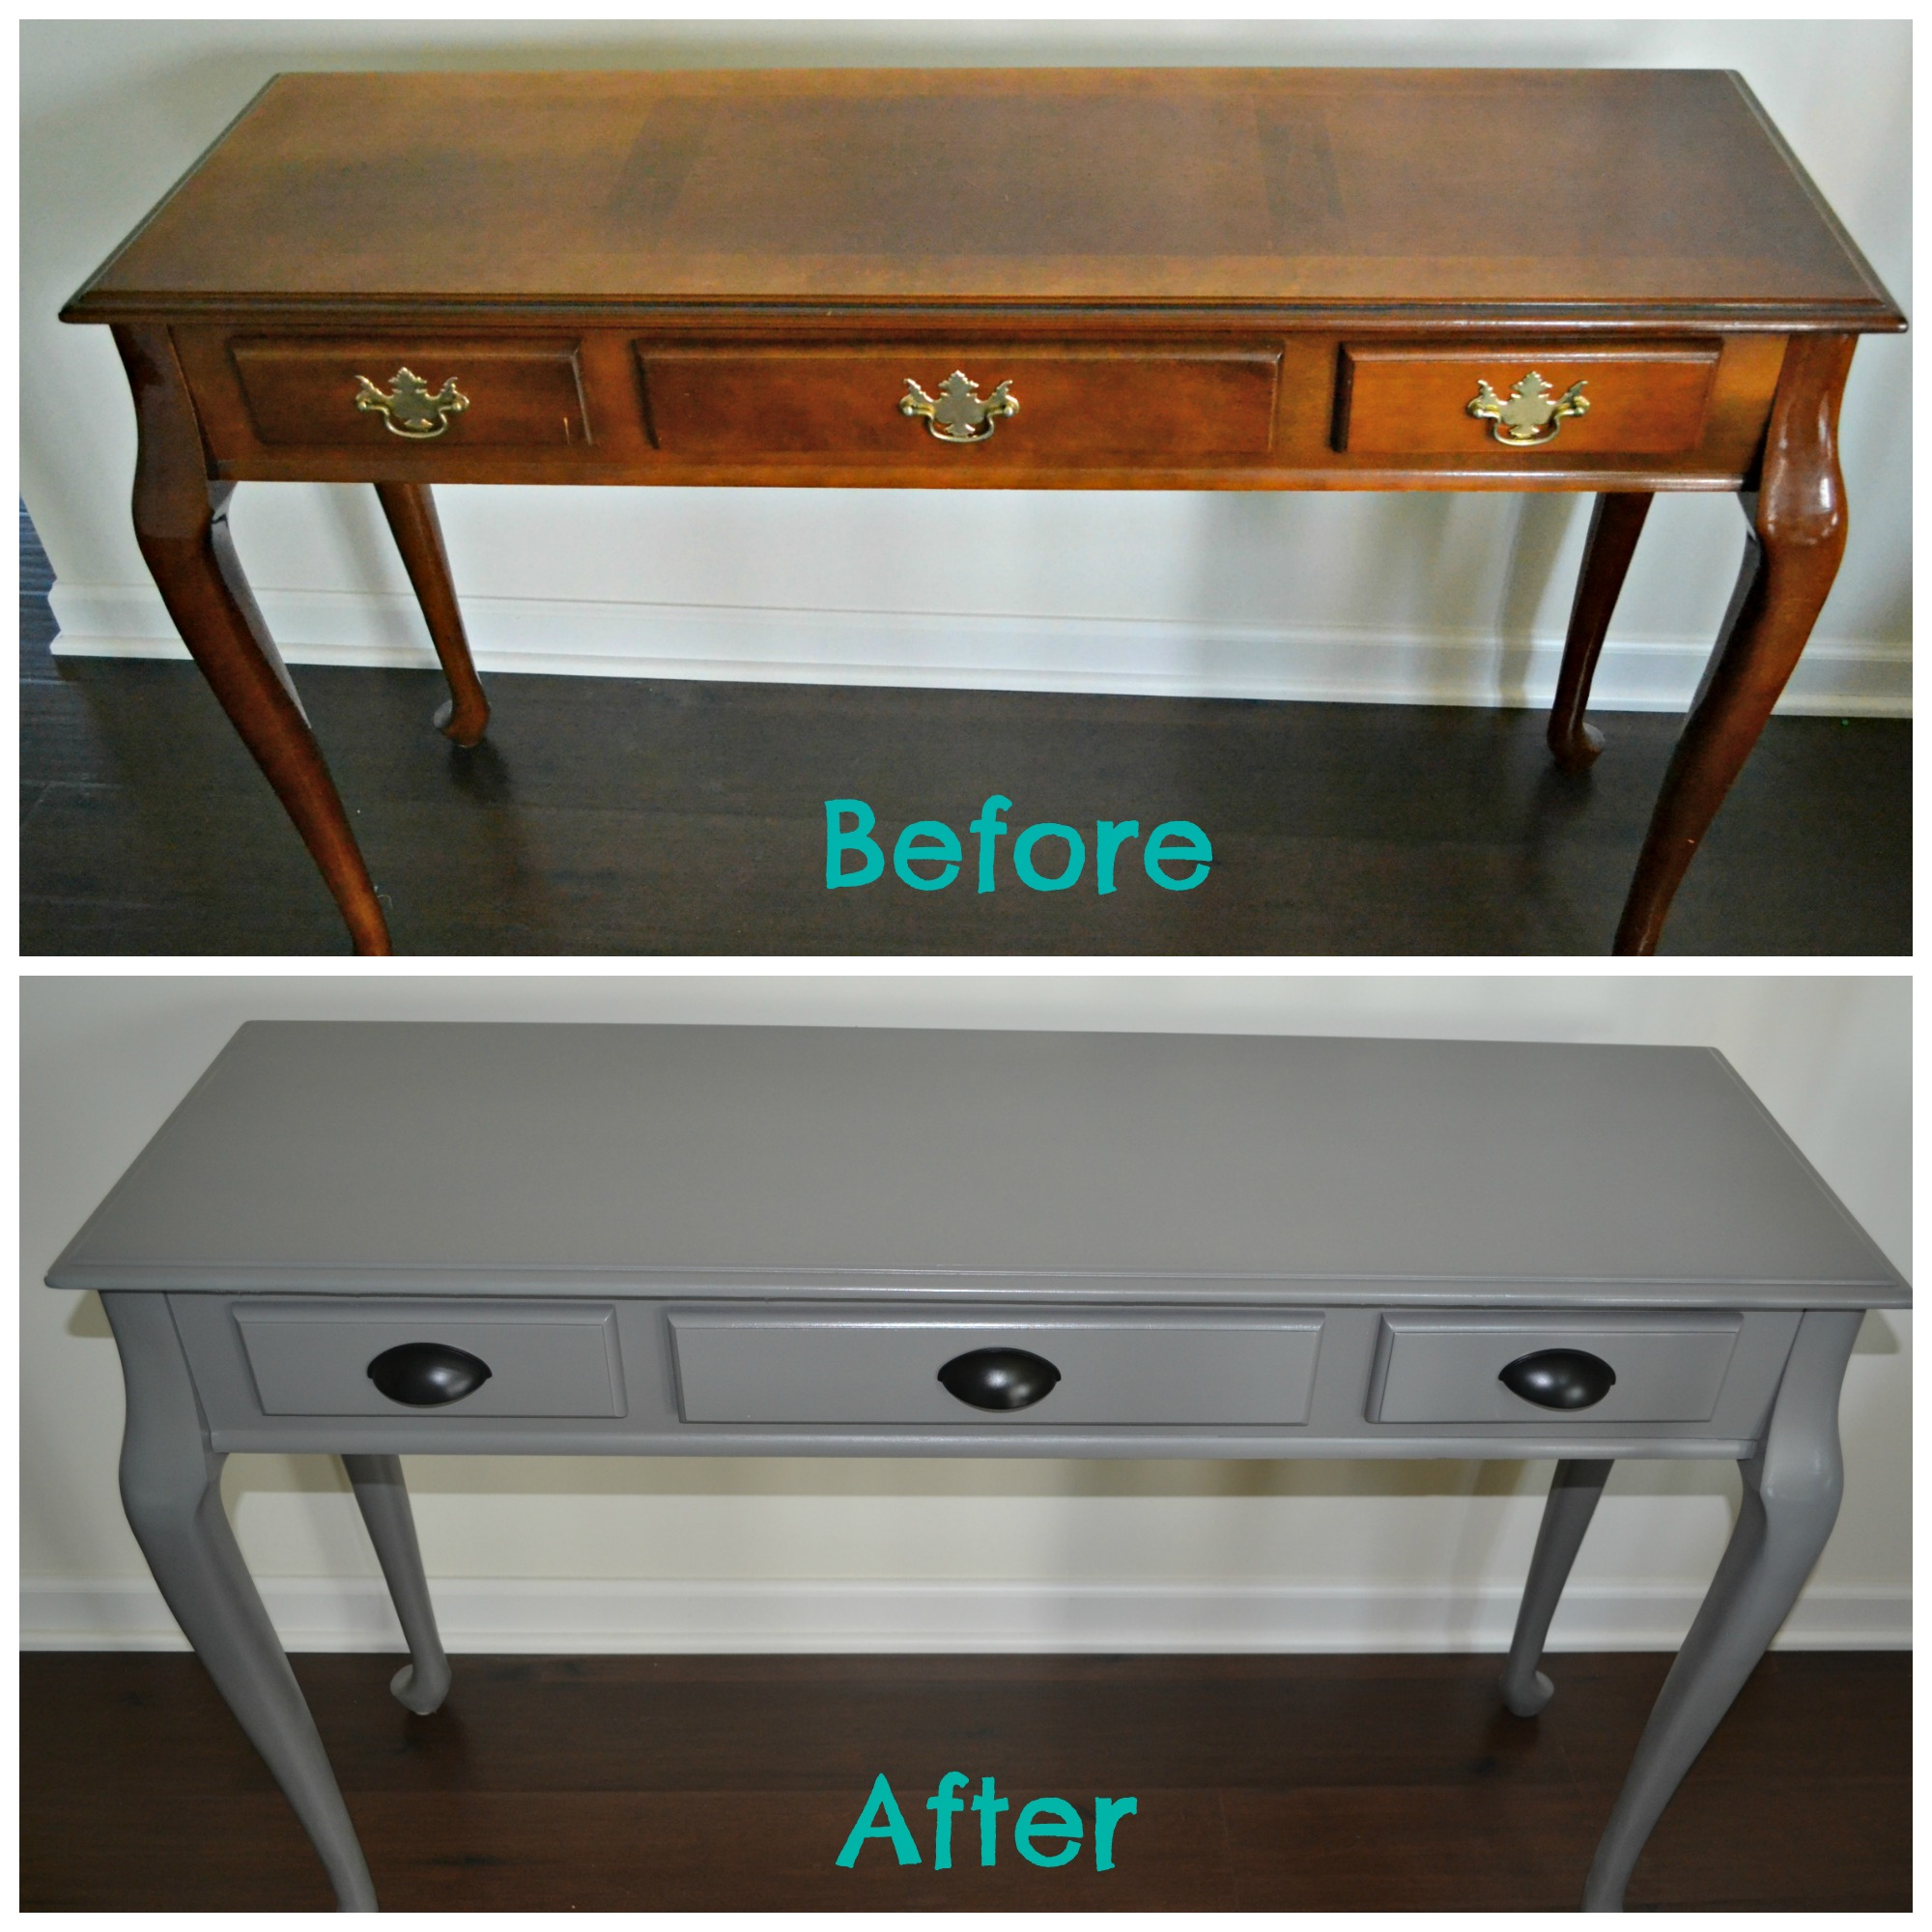 Diy painted console table how to update furniture with How to spray paint wood furniture